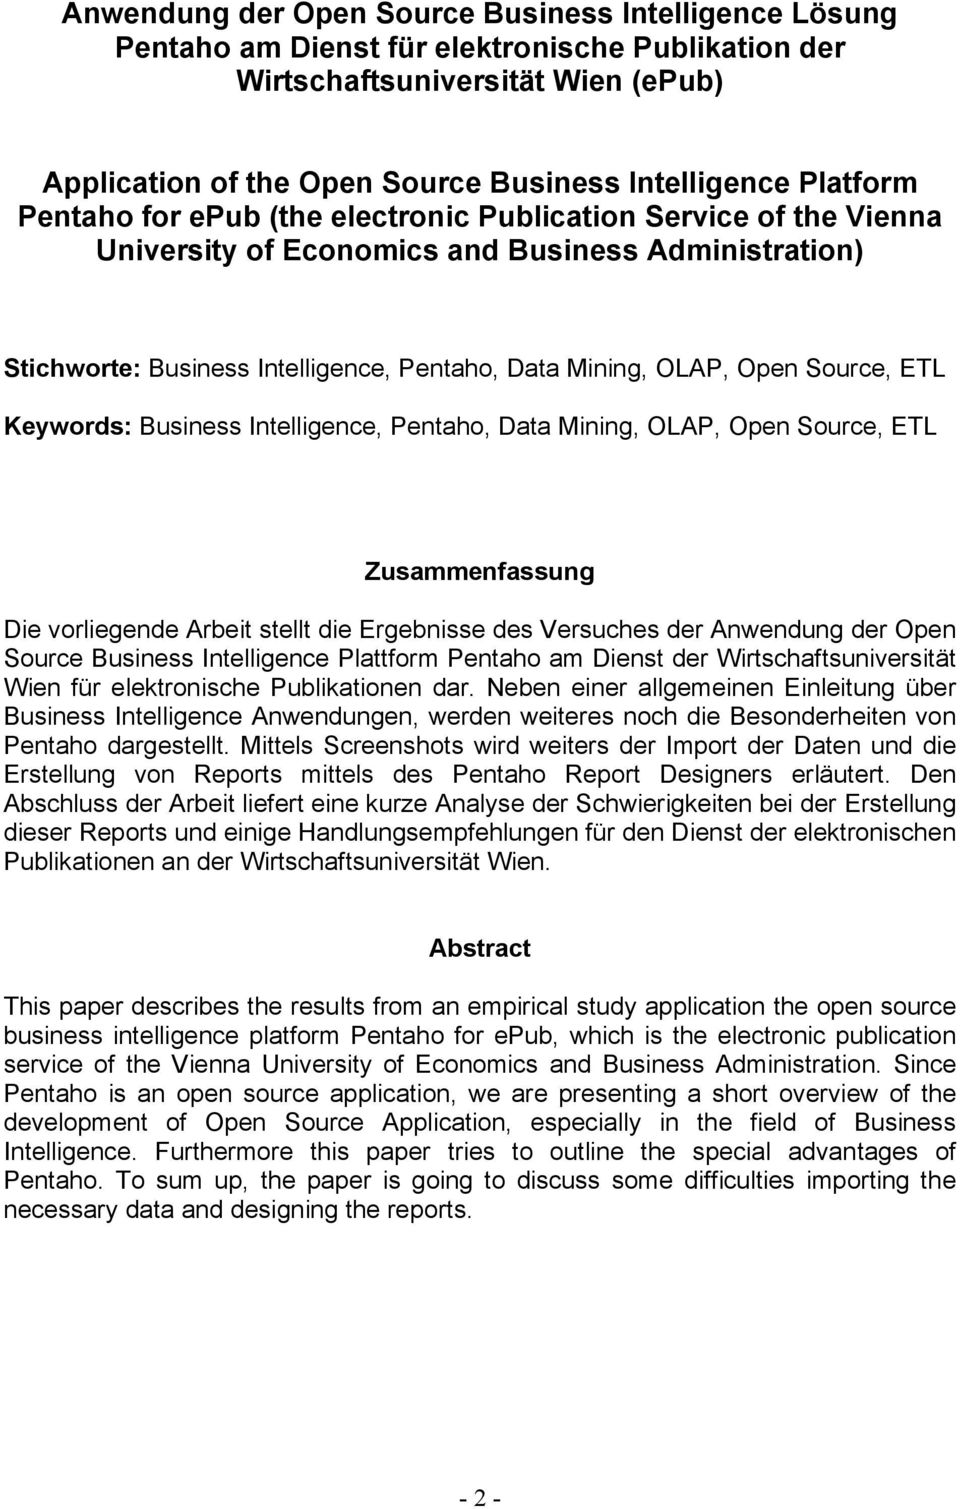 Source, ETL Keywords: Business Intelligence, Pentaho, Data Mining, OLAP, Open Source, ETL Zusammenfassung Die vorliegende Arbeit stellt die Ergebnisse des Versuches der Anwendung der Open Source